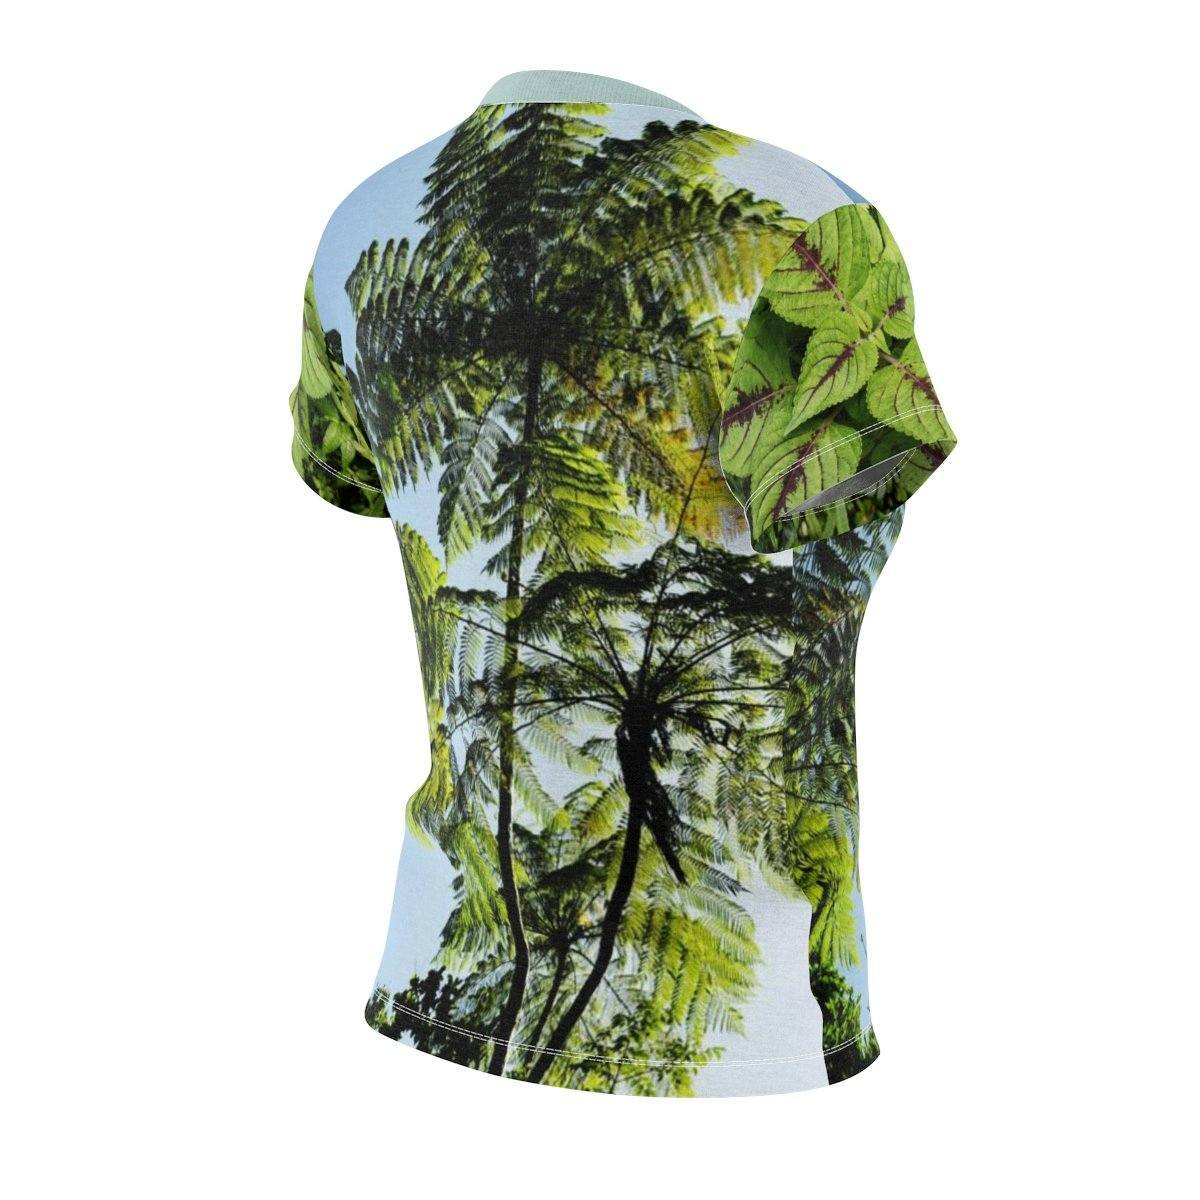 Women's AOP Cut & Sew Tee - Rio Sabana river exploration All Over Prints Printify